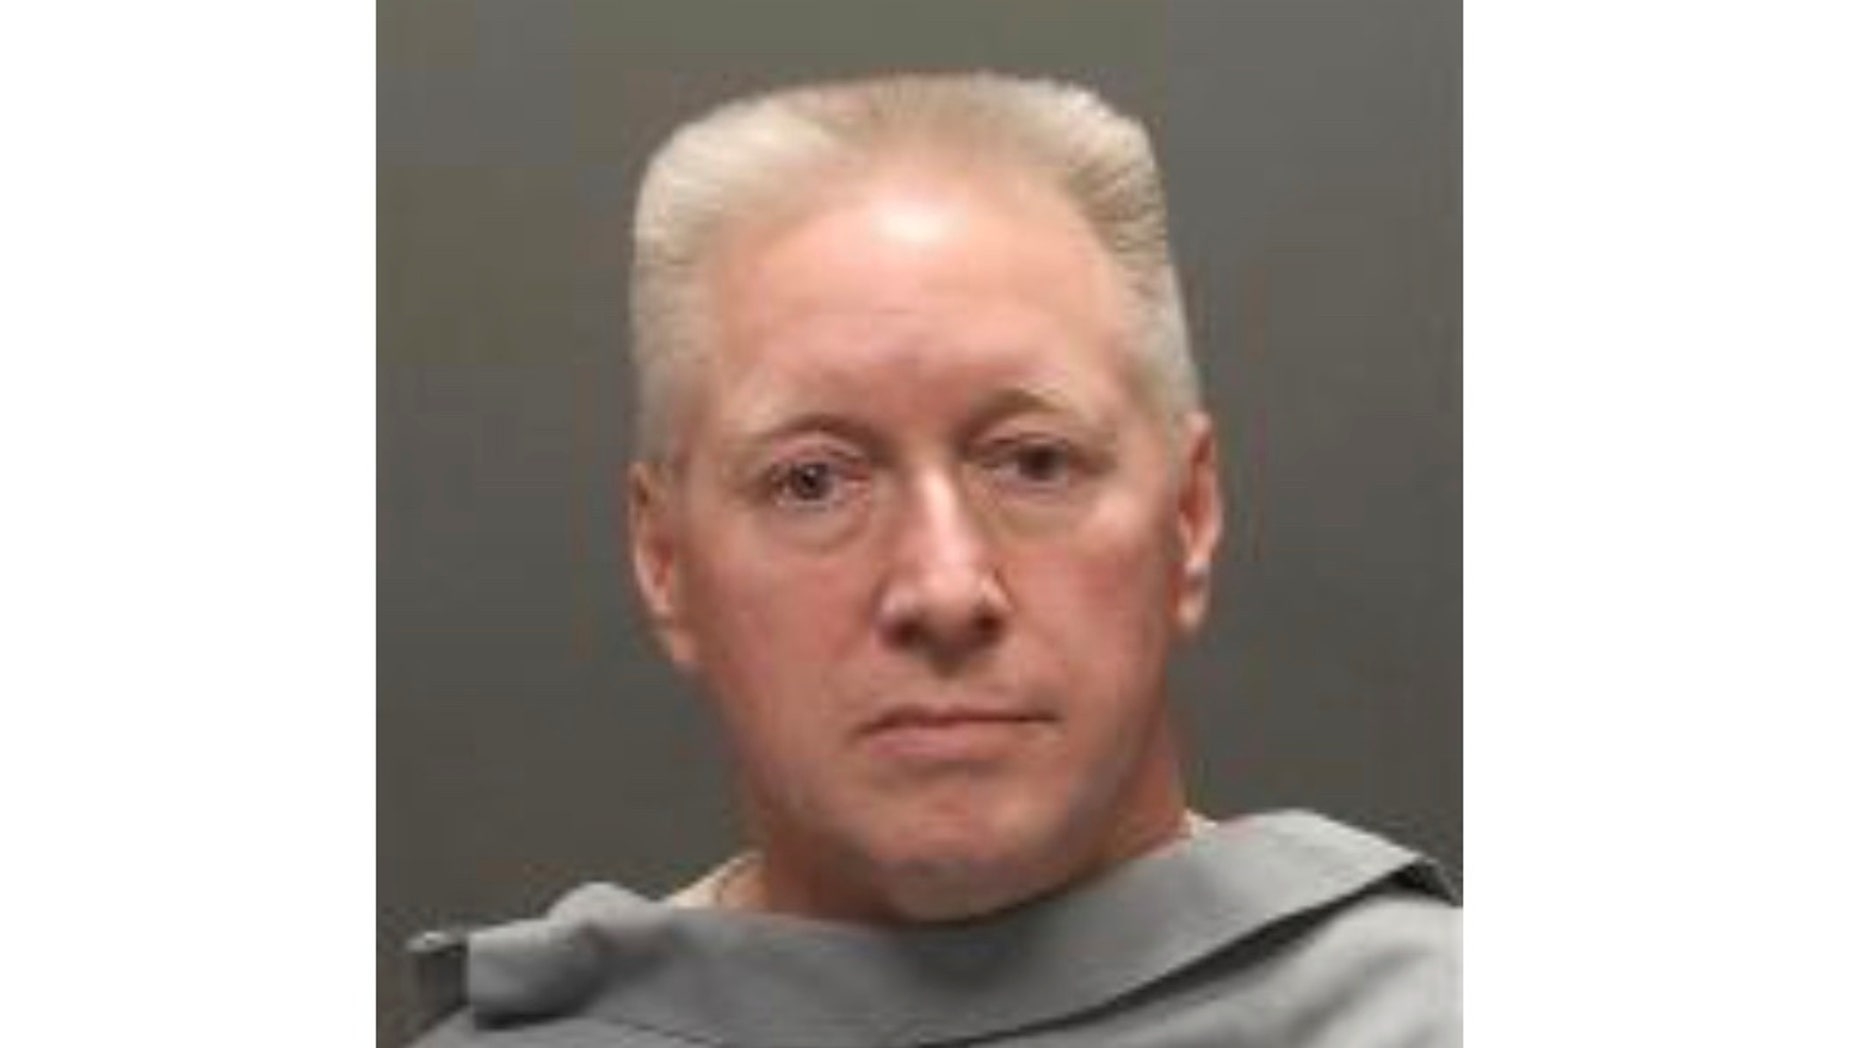 Rexford Lynn Keel Jr. is seen in a photo provided Sunday March 17, 2019 by the Pima County NC Sheriff's Department. Keel Jr. was arrested Sunday on the outskirts of Tucson, Arizona, by state troopers. North Carolina authorities say they obtained an arrest warrant Friday accusing Keel of murder in his wife's death. (Pima County Sheriff's Department via AP)